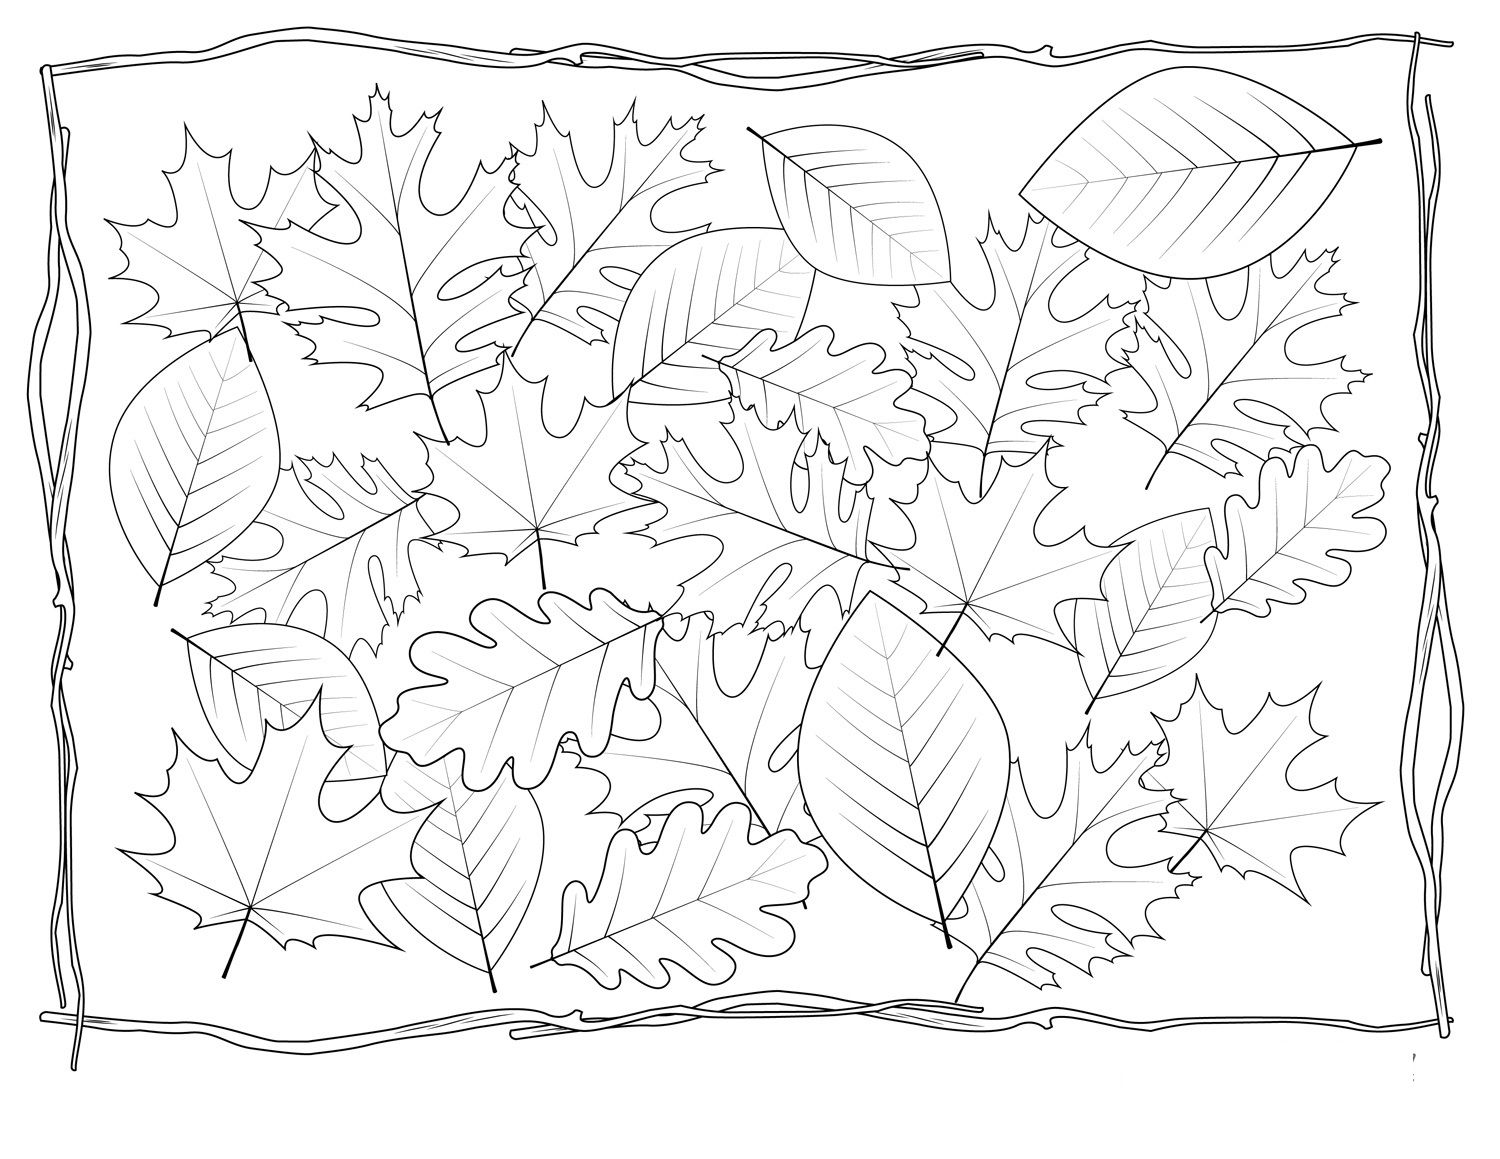 Leaf coloring page | Coloring For Kids | Pinterest | Heritage ...